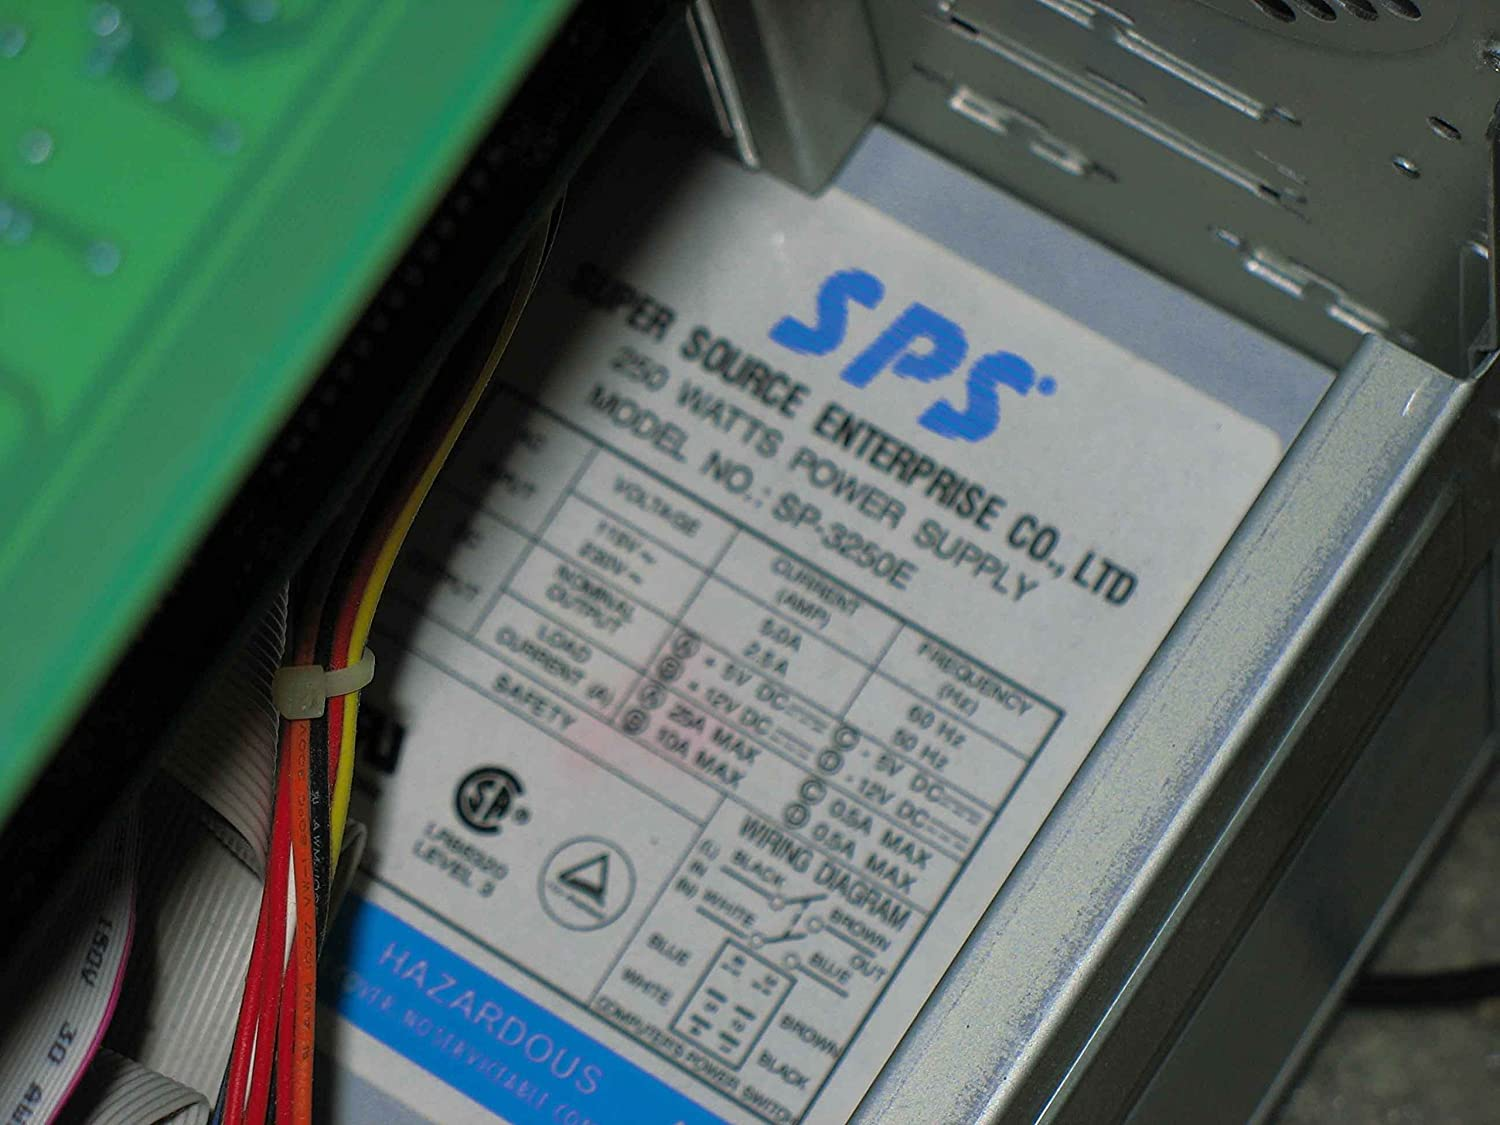 Super Sp 3250e 250 Watt At Power Supply Source Ayp Wiring Diagram Enterprise New Compatable Only Computers Accessories